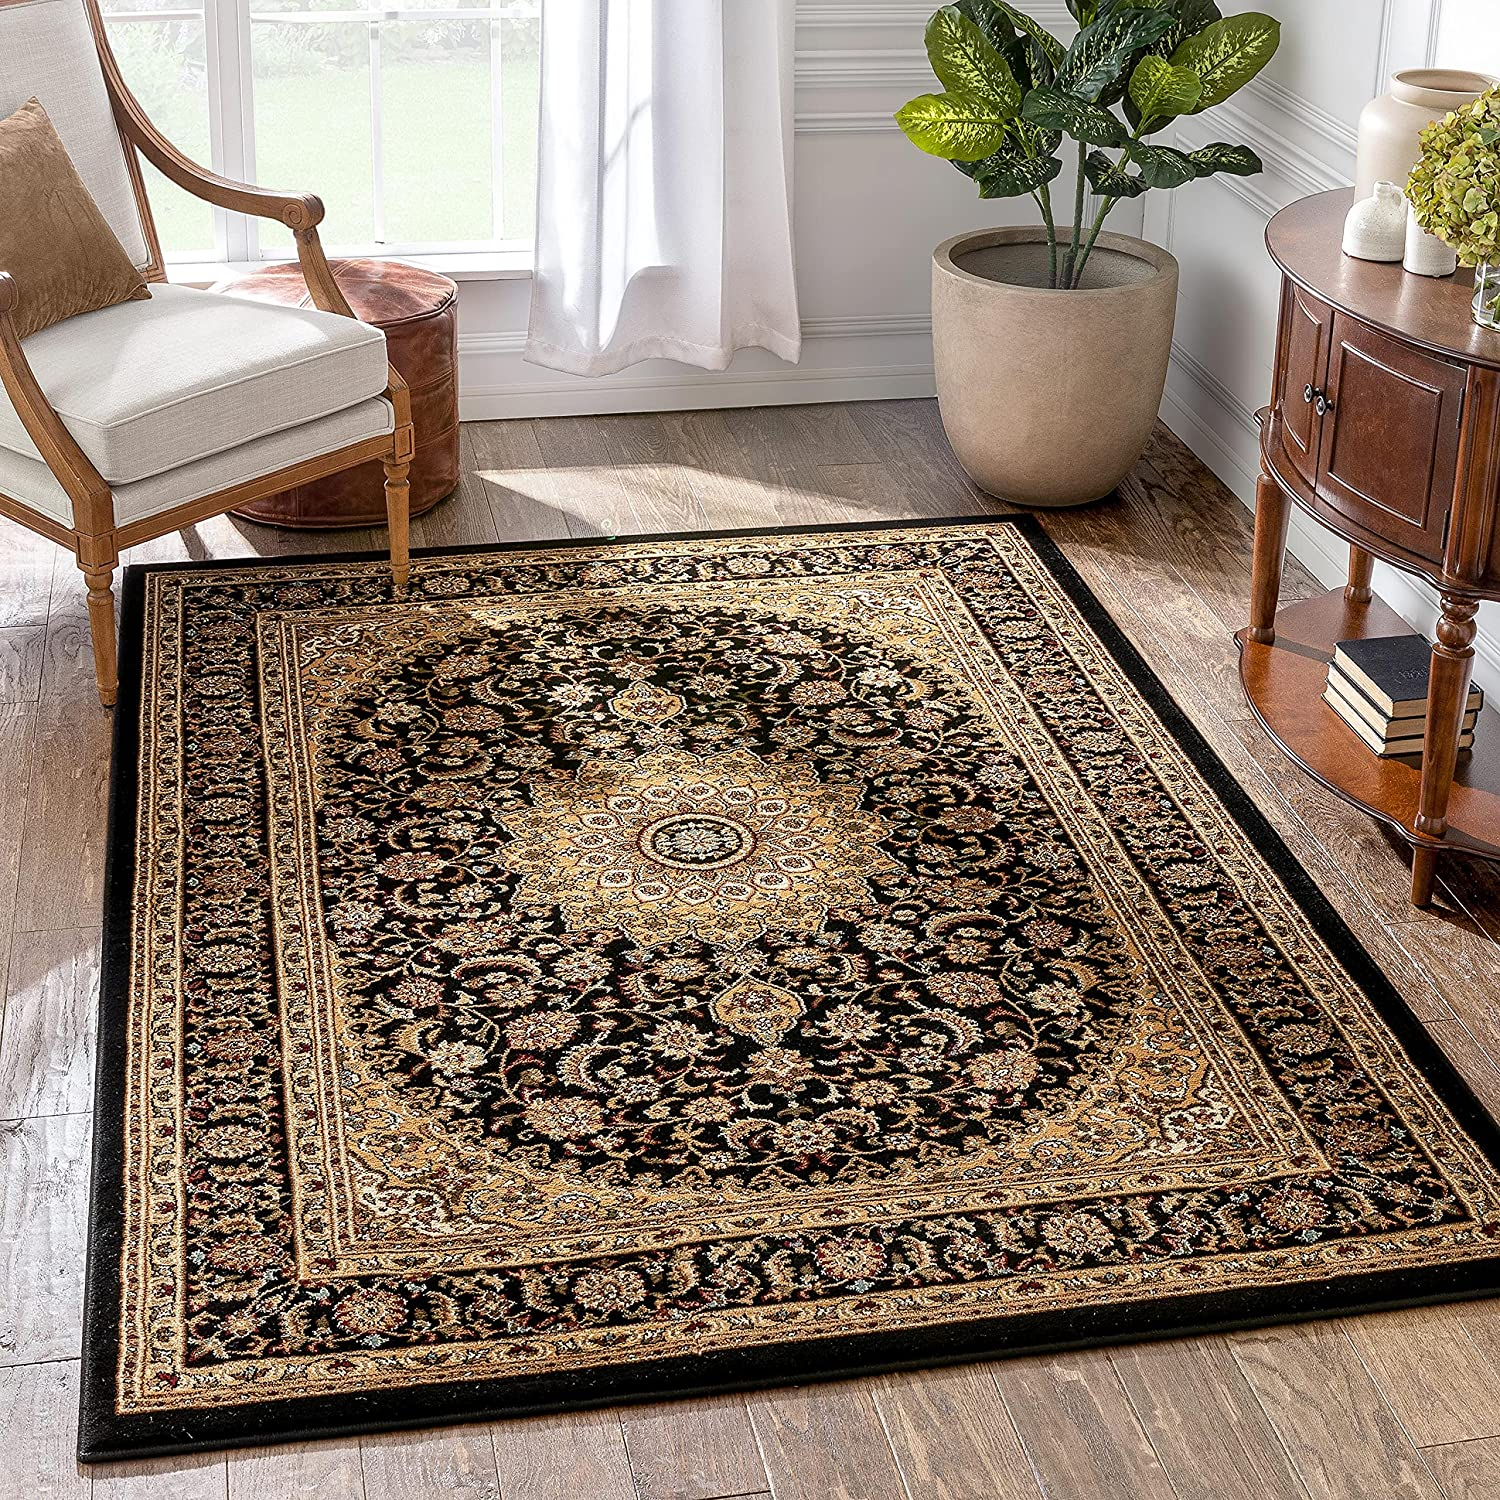 Well Woven Timeless Aviva Traditional Oriental Bl Cheap mail order shopping Country French Memphis Mall